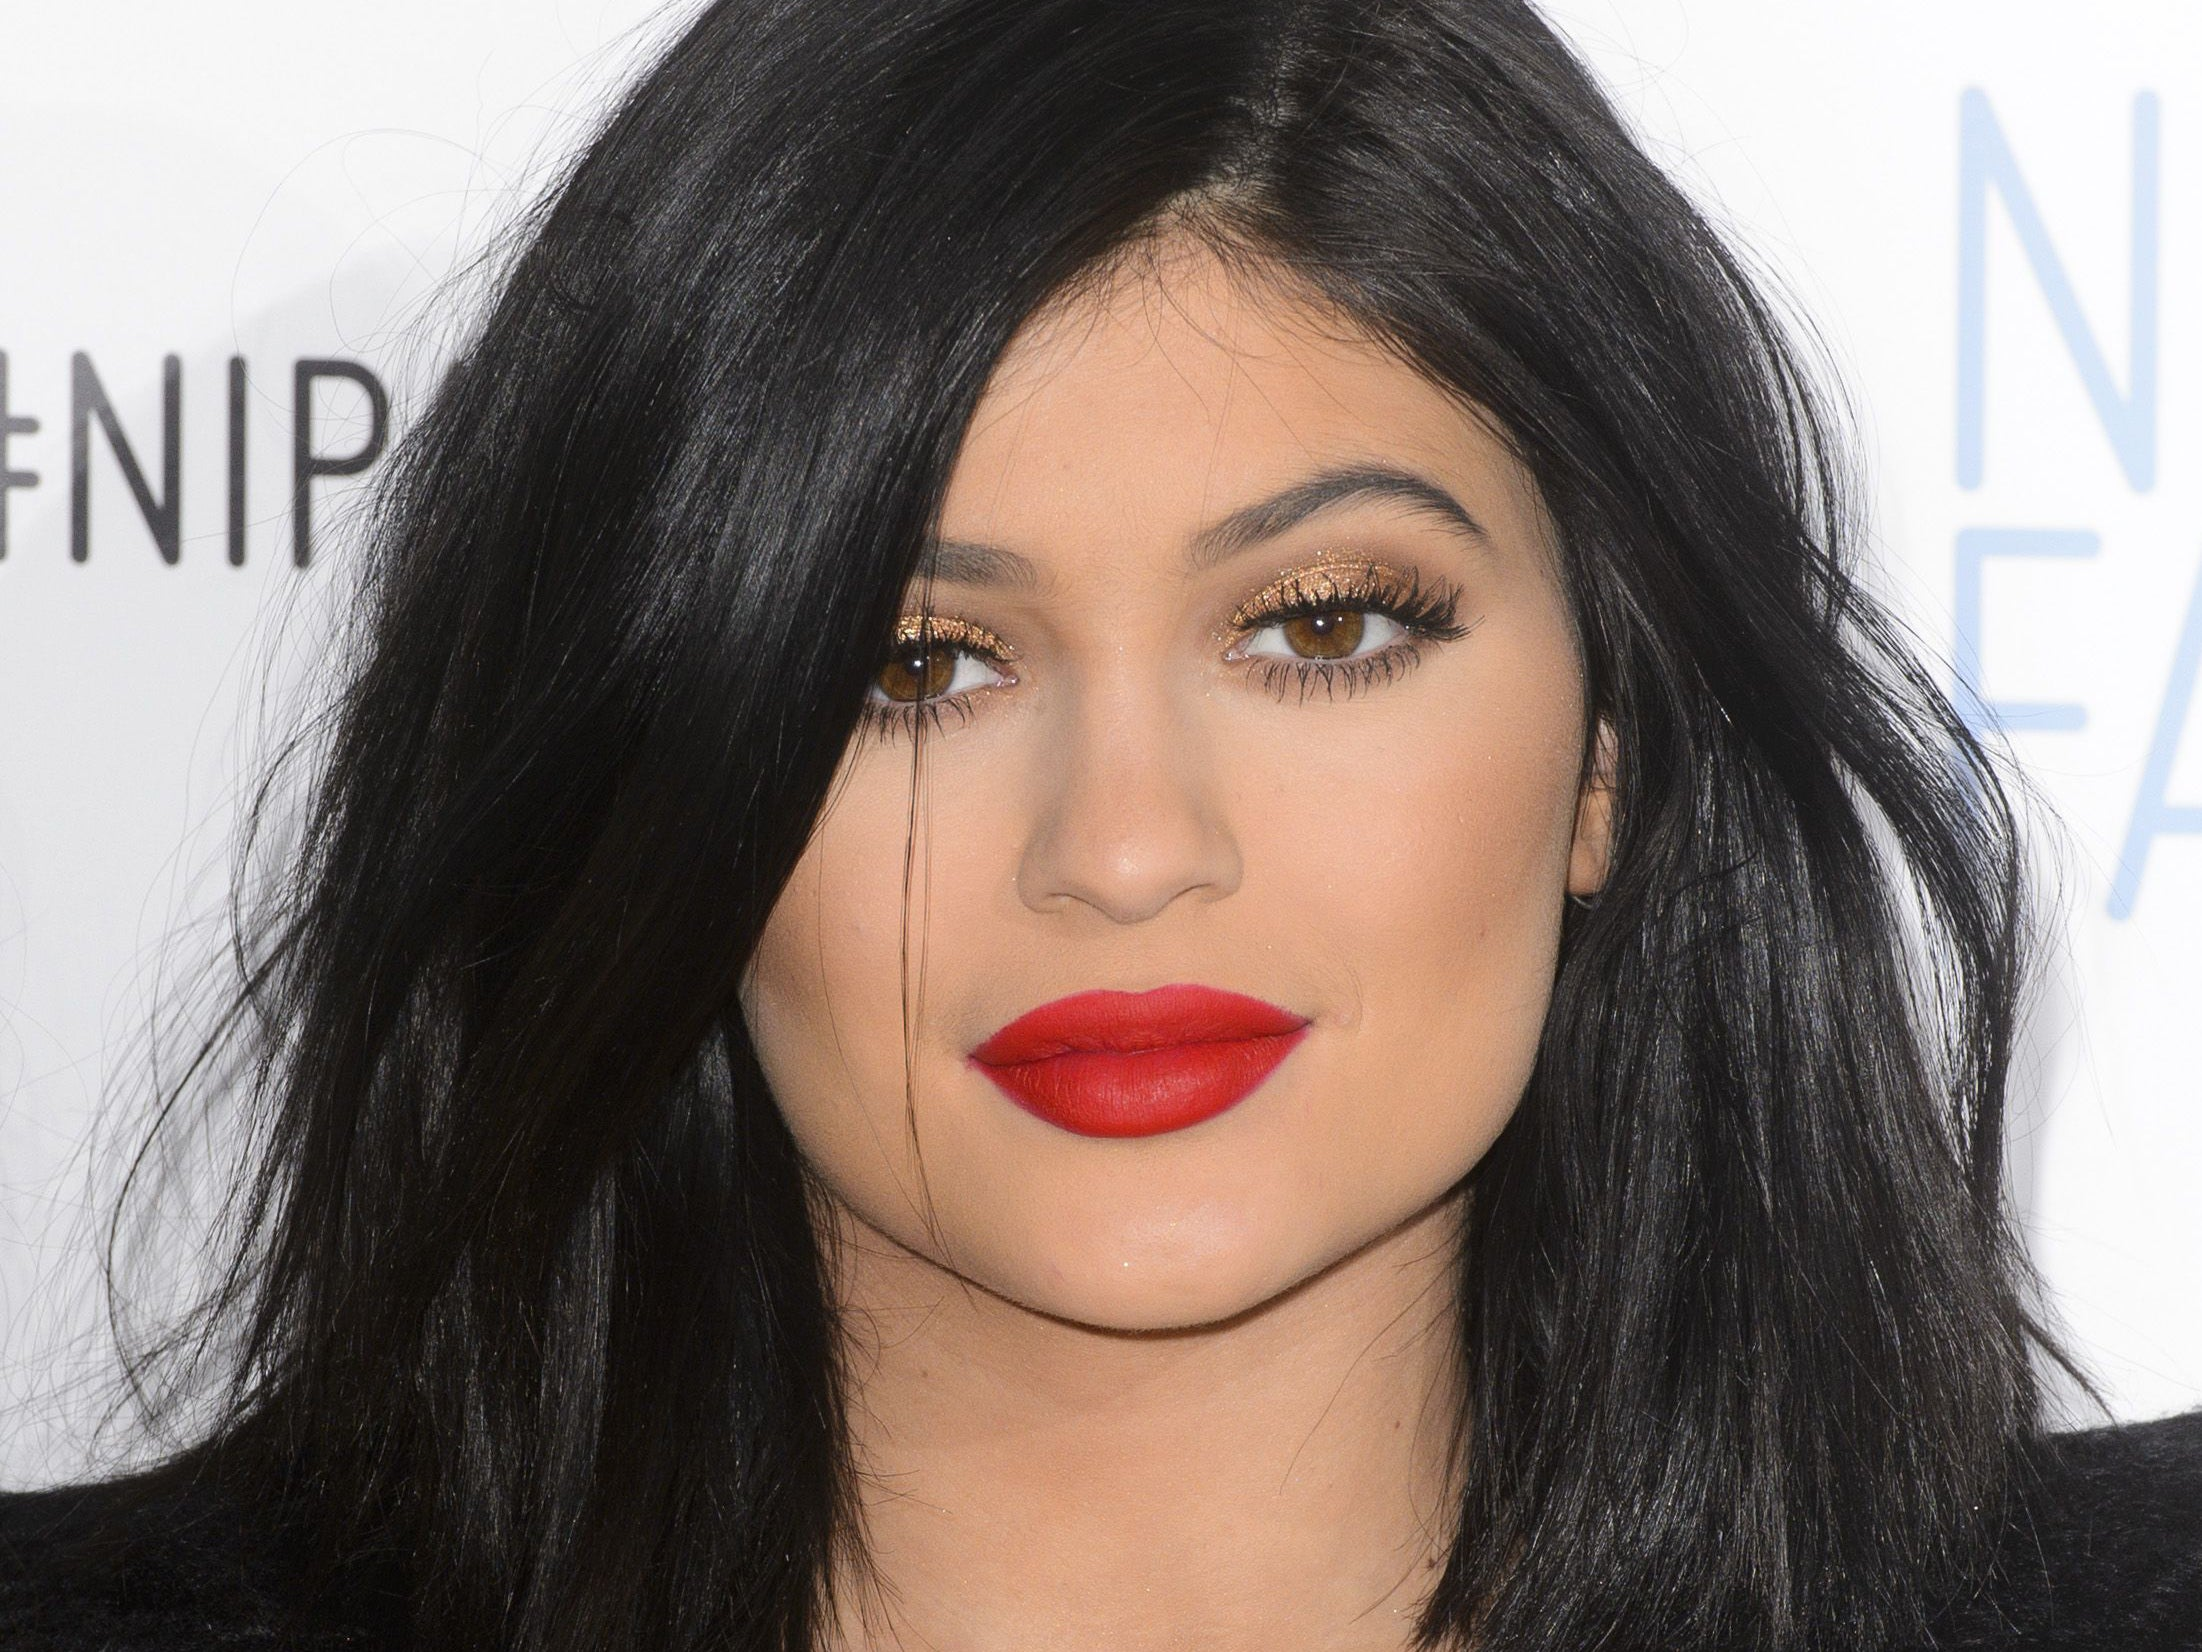 kylie jenner - photo #8